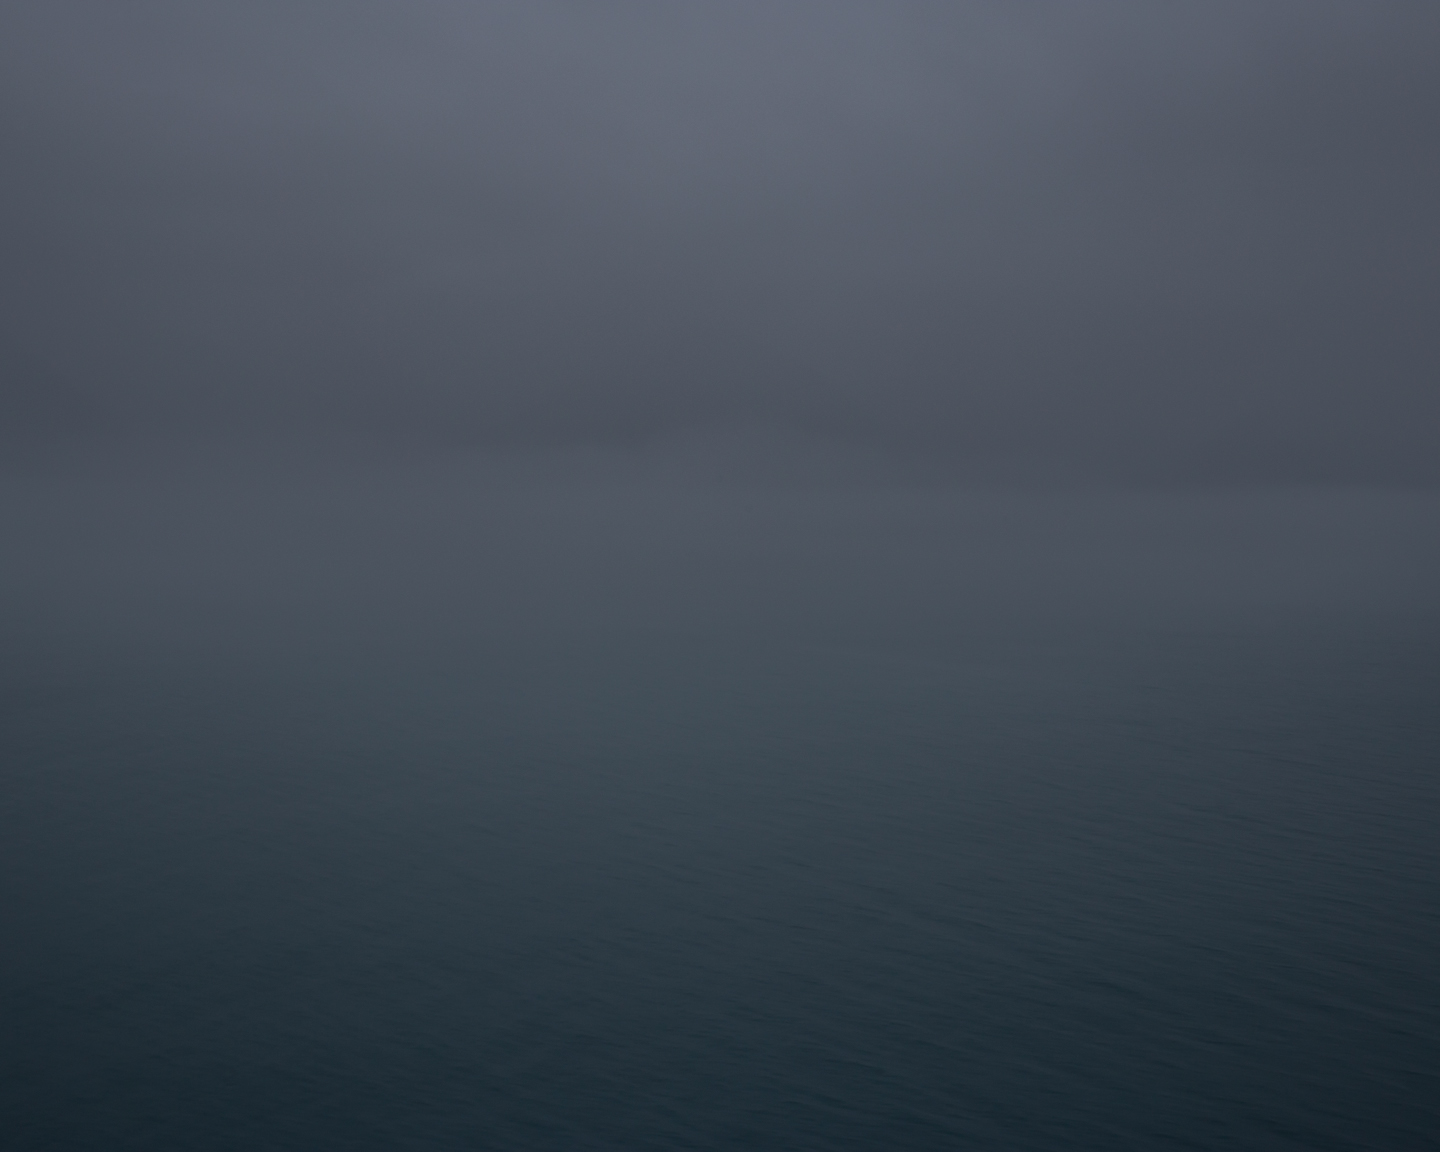 Foggy Horizon, 2015